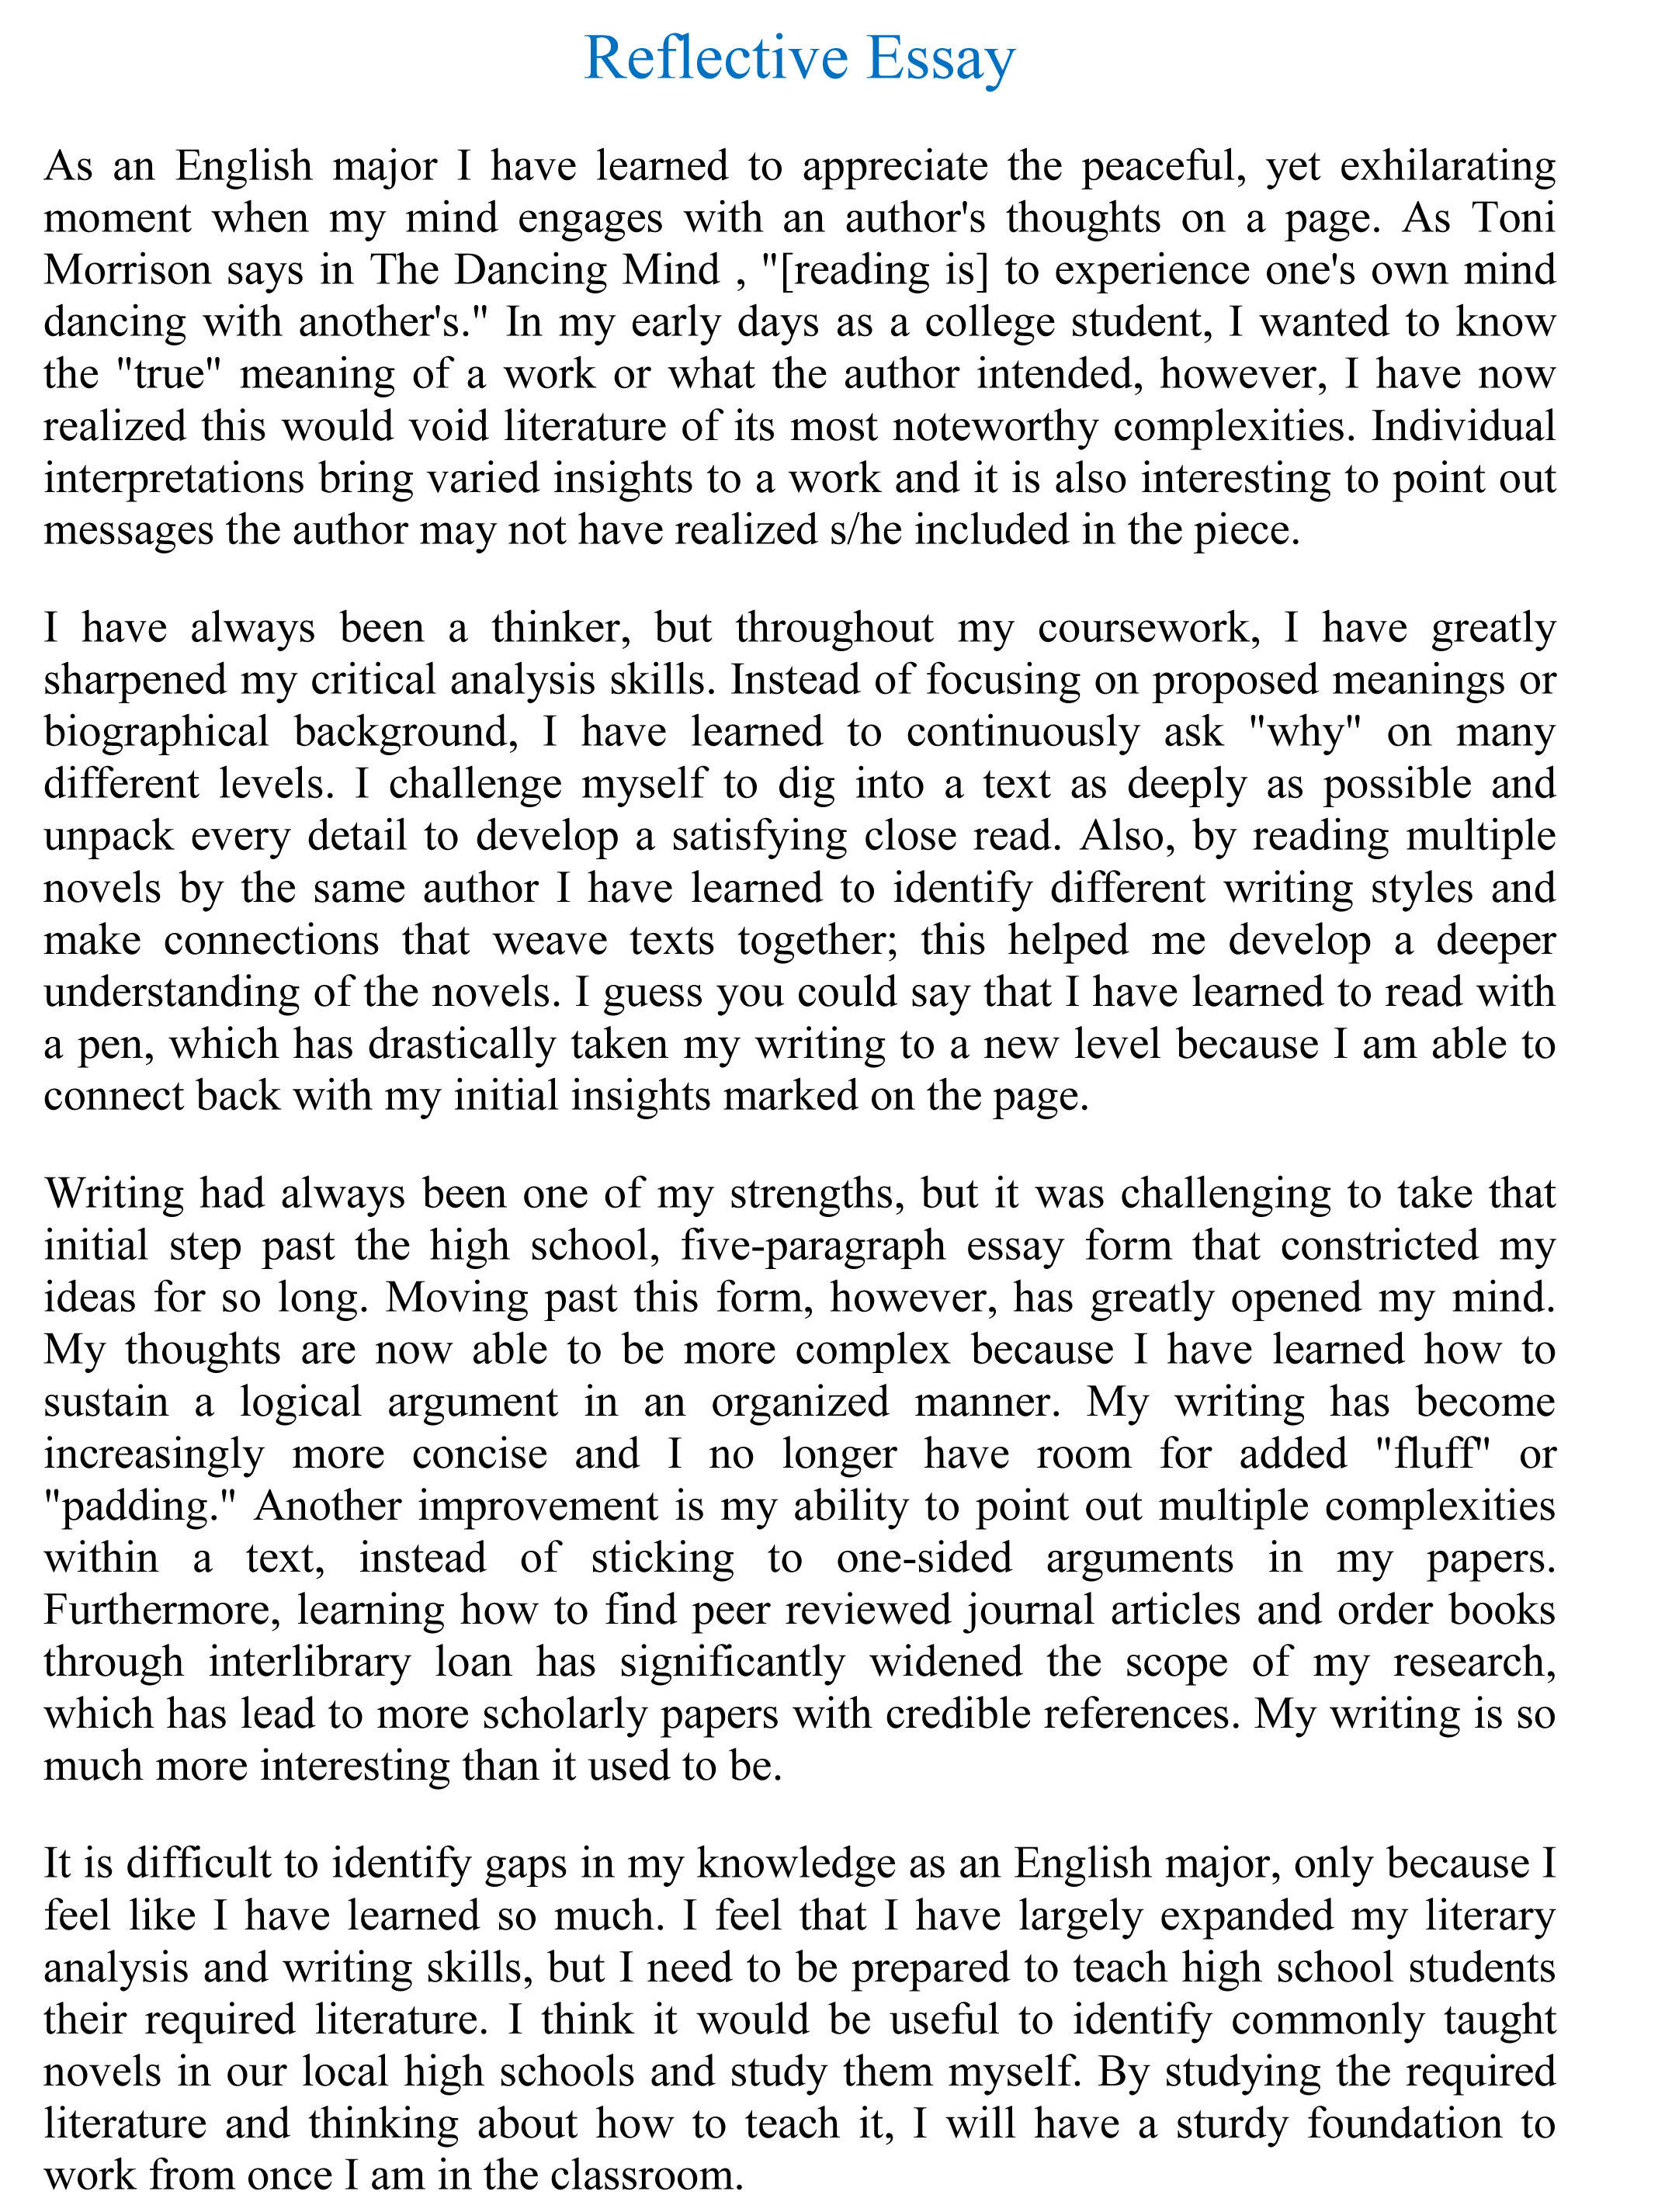 Richard Rodriguez Essays The Alchemist Essay Nikola Tesla Essay Nikola Tesla Biographical Full Essays  To Access Full Essays Simply Essay Help Forum also Current Events Essays The Alchemist Essays The Alchemist Essay Nikola Tesla Essay Nikola  Beliefs Essay